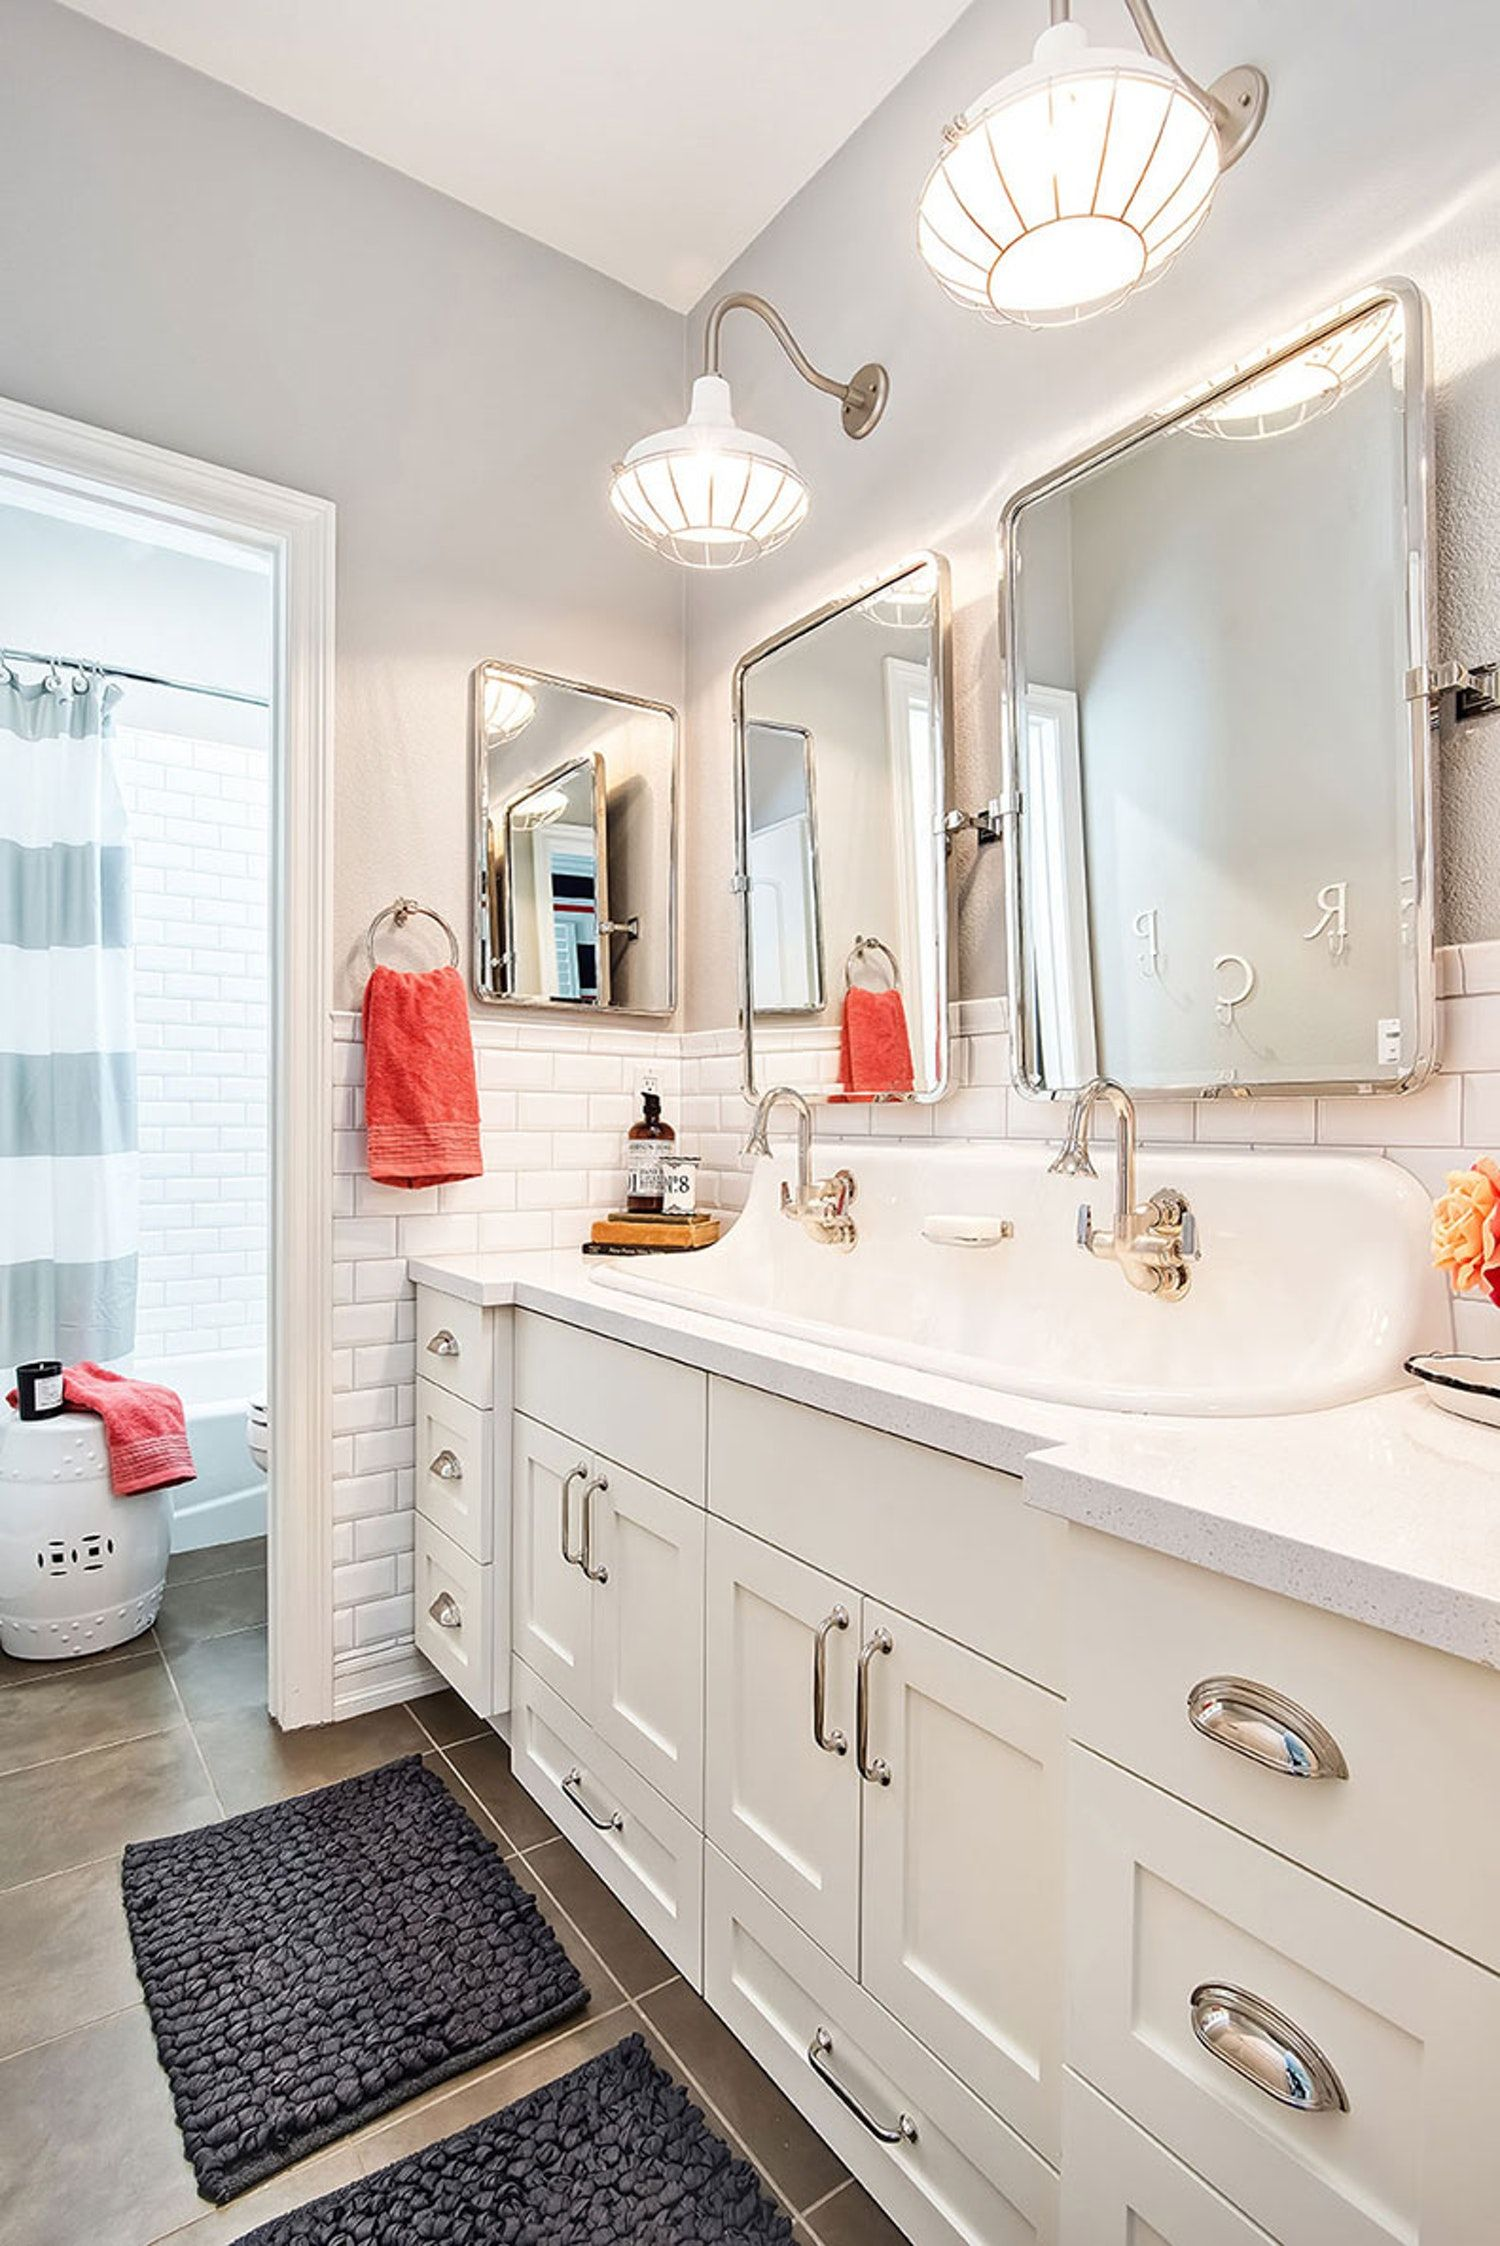 Beyond Mcmansions Rethinking The Double Sink Kids Bathroom